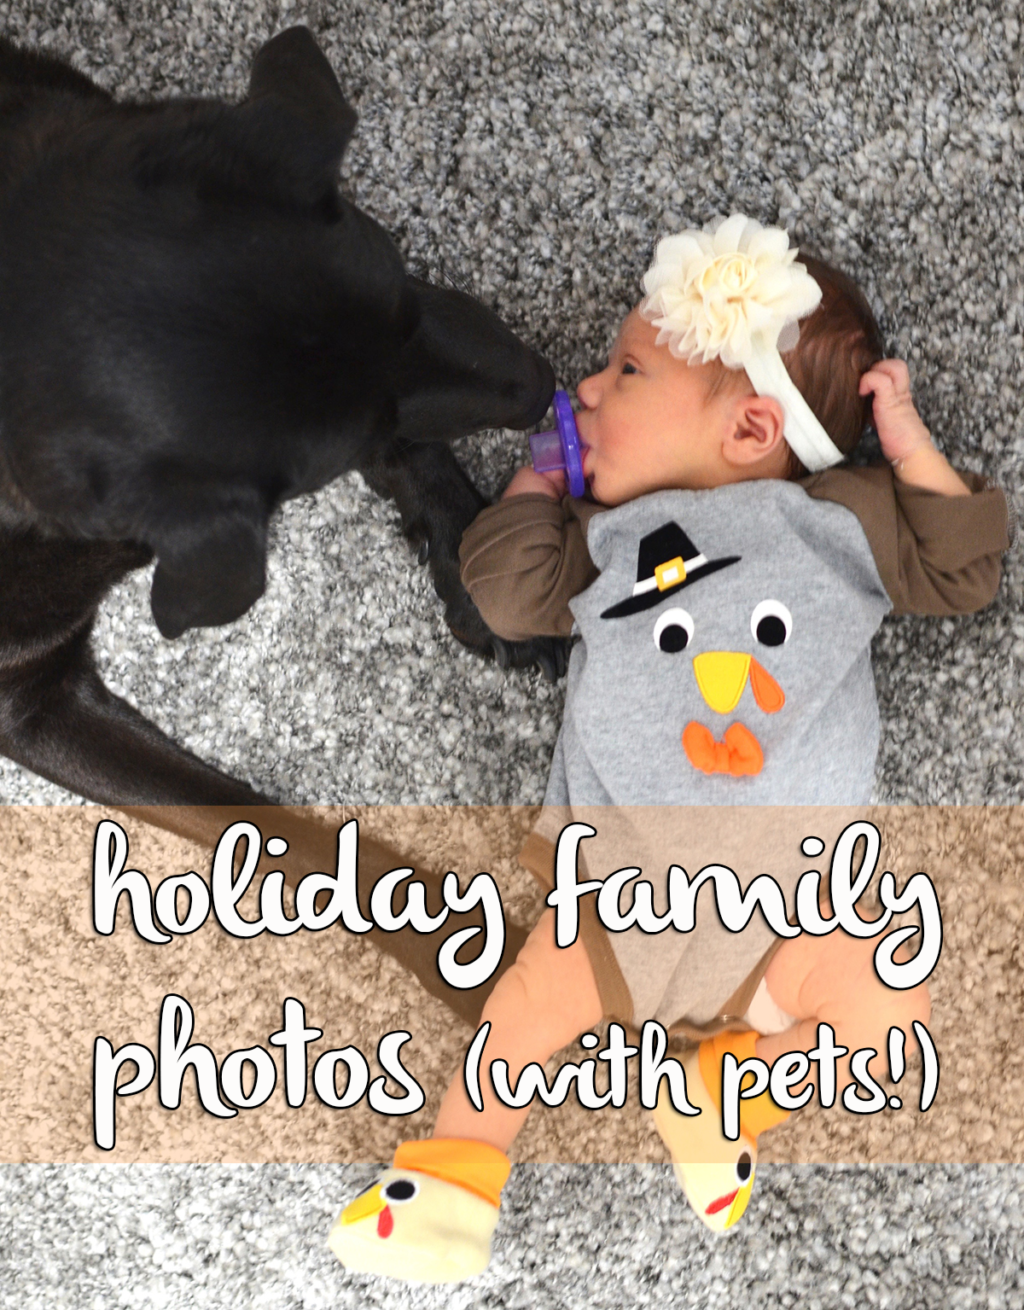 Holiday Family Photos with Pets | Houston Moms Blog